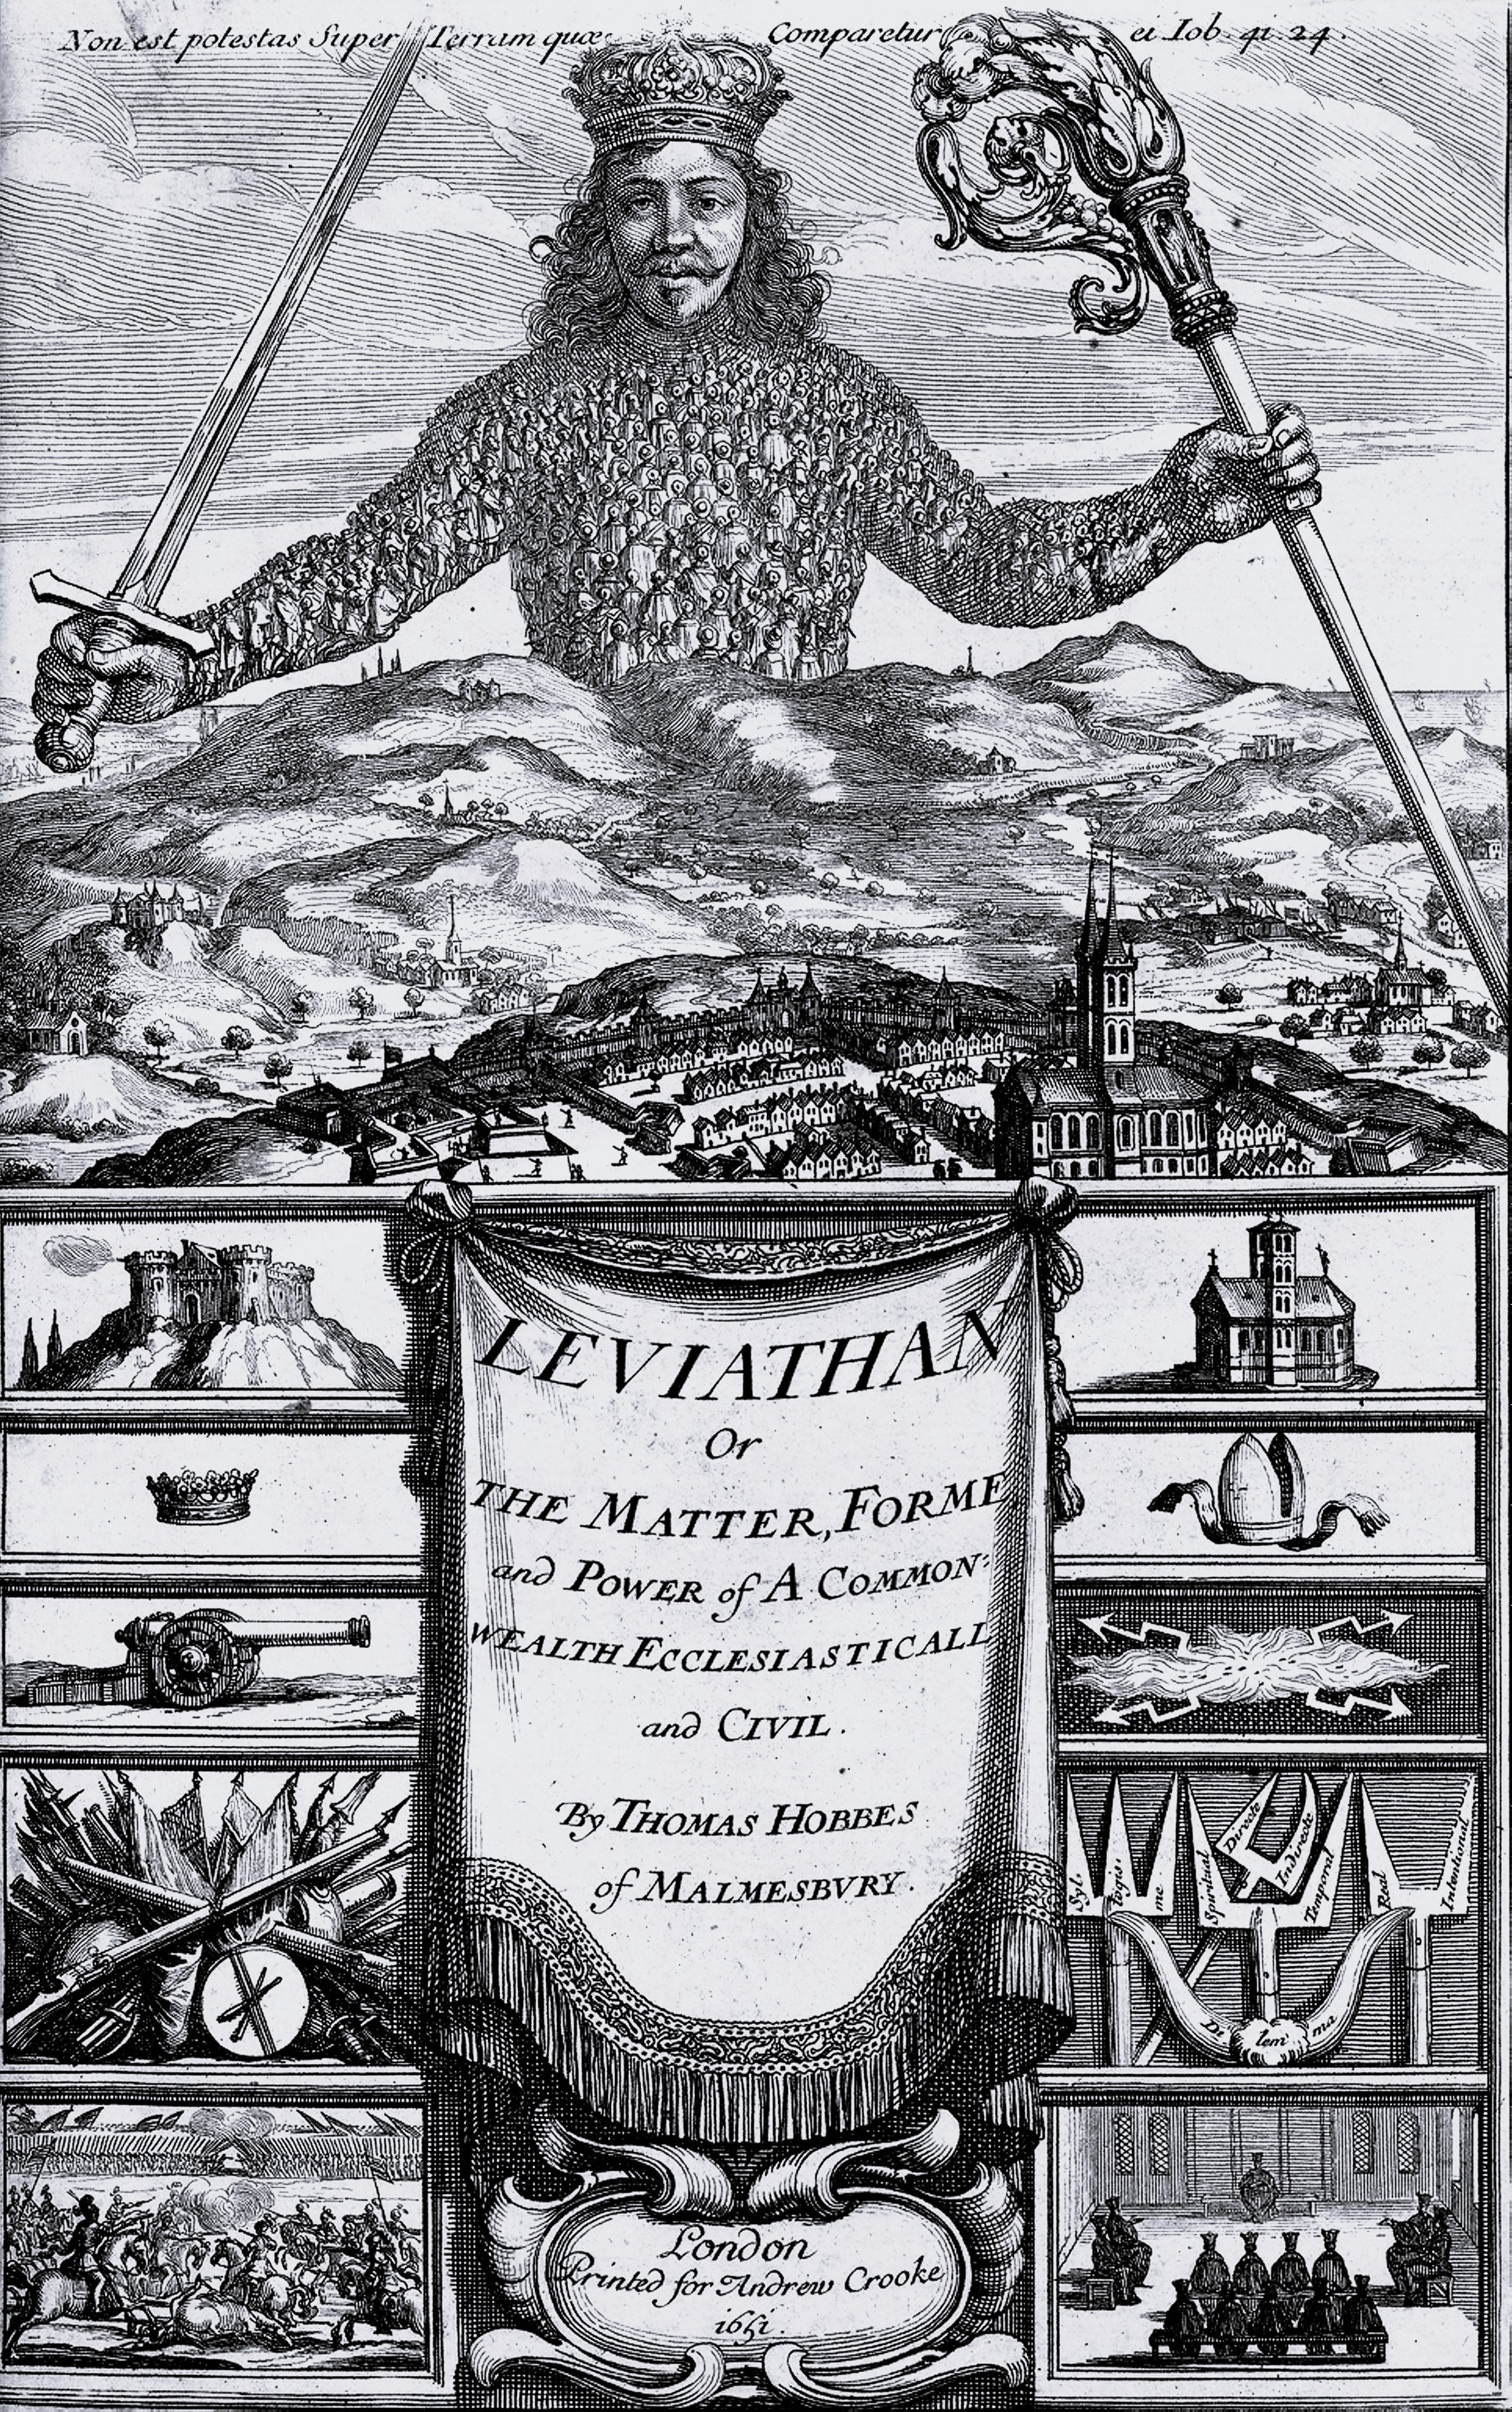 Frontispiece of Leviathan, 1651